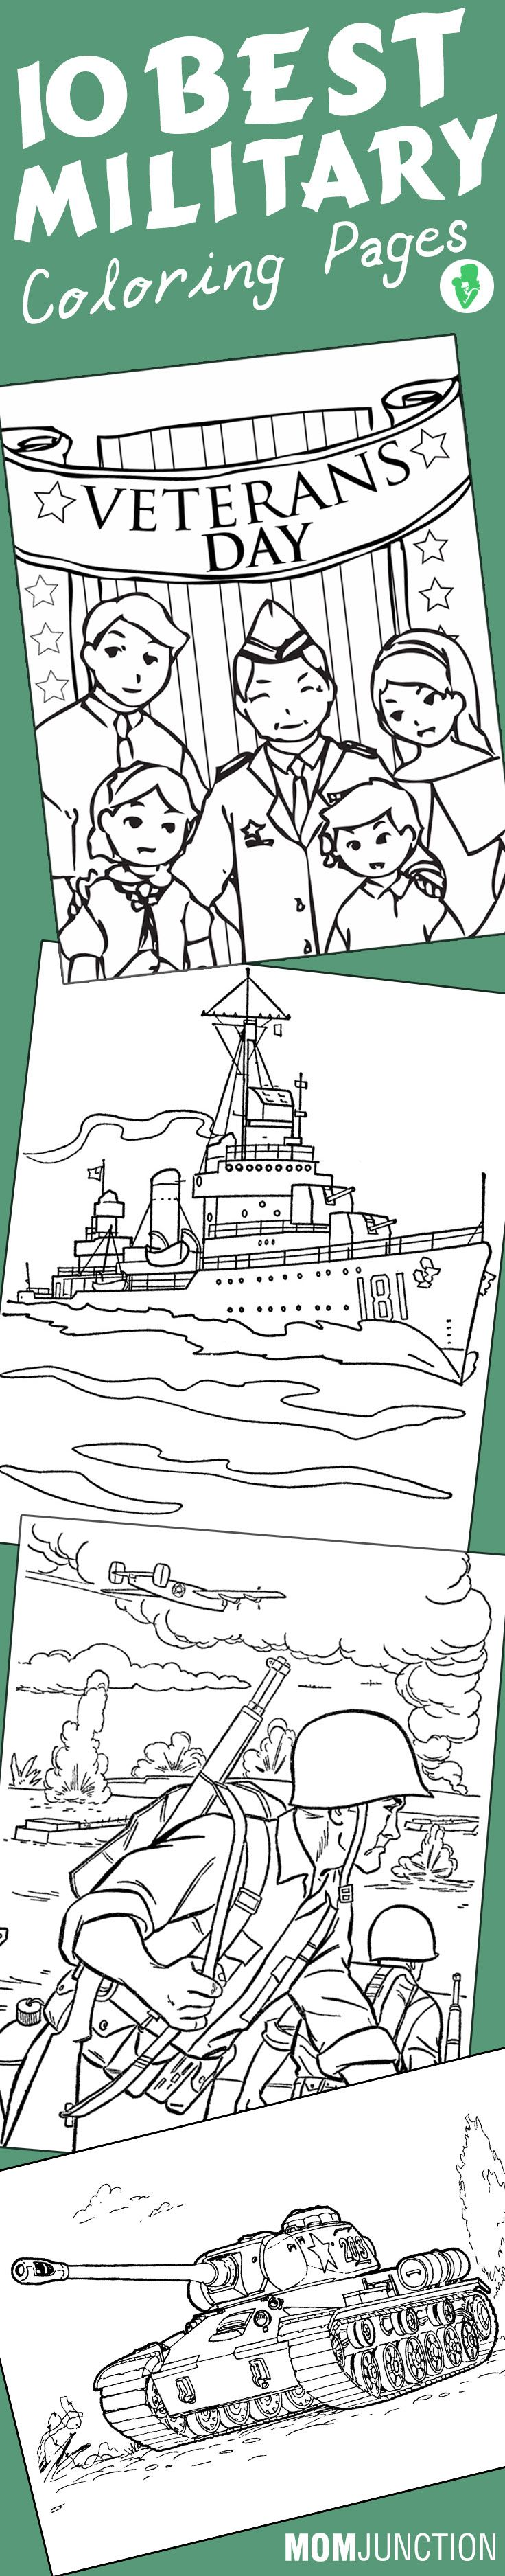 ca missions coloring pages - photo #46